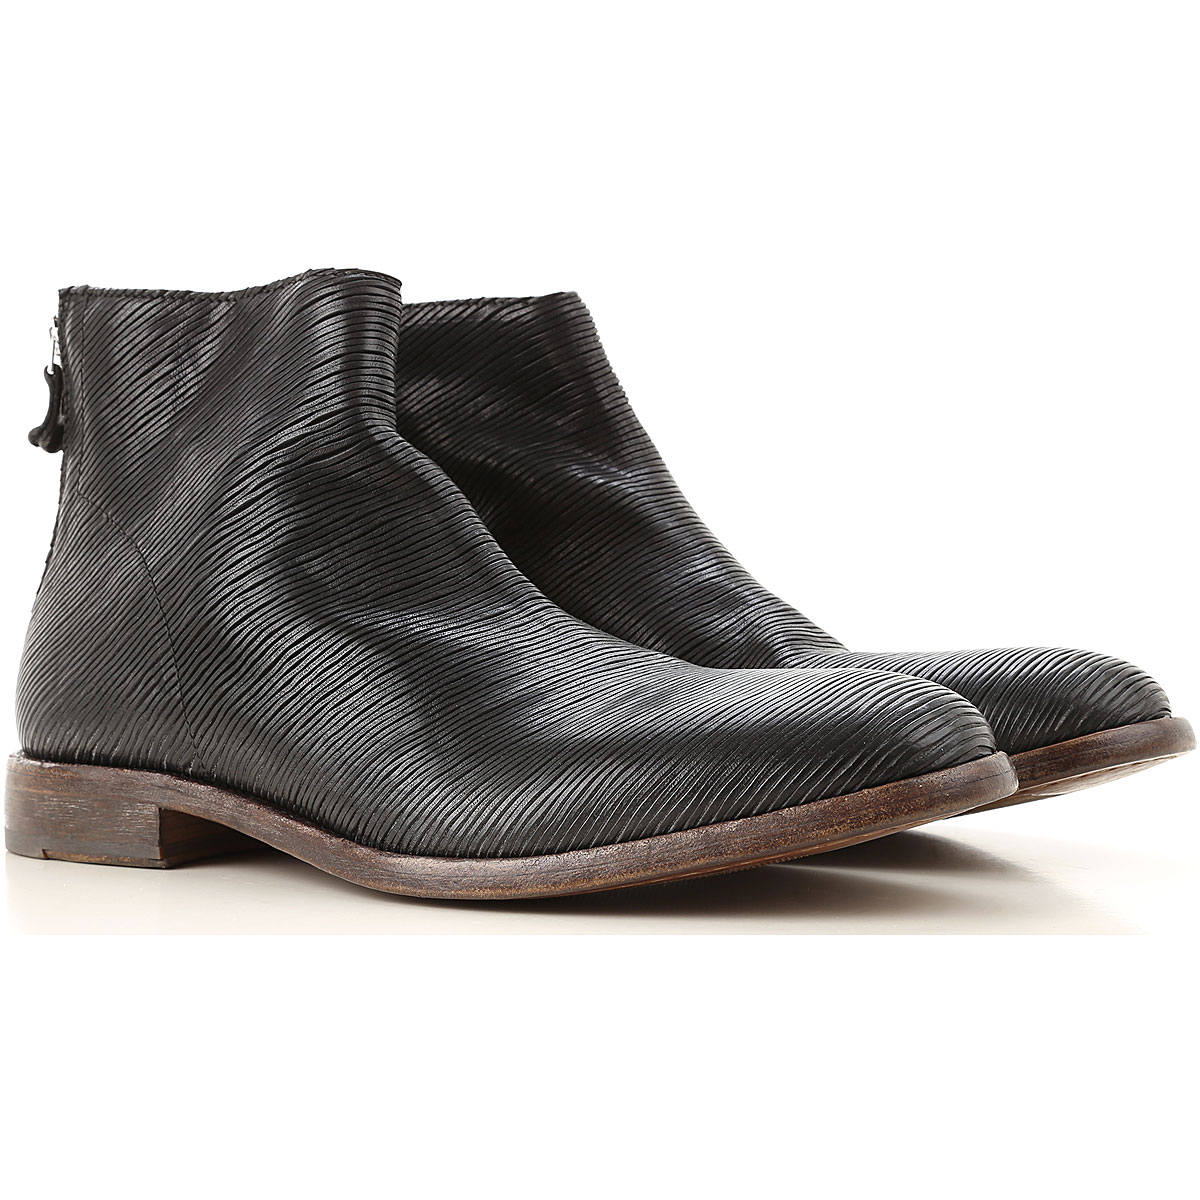 Moma Boots for Men, Booties On Sale, Black, Leather, 2019, 7.5 8 9